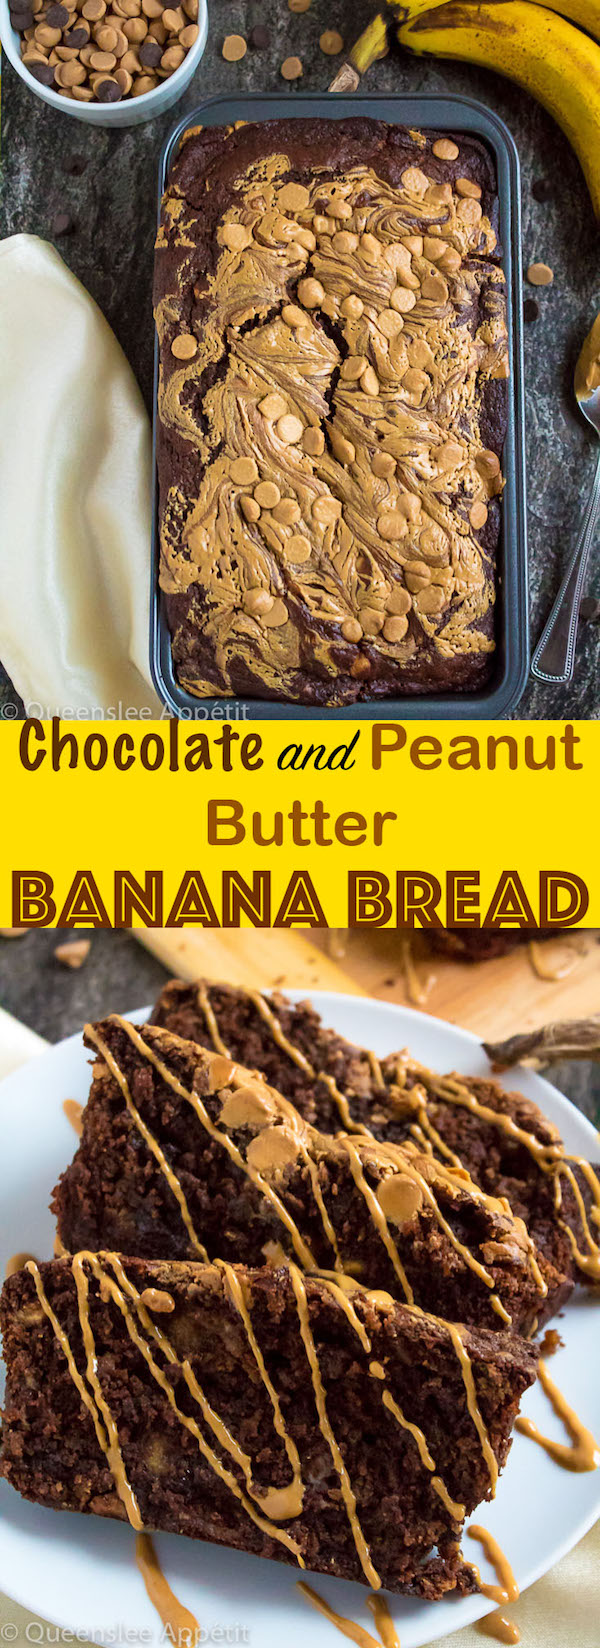 This Chocolate and Peanut Butter Banana Bread takes the worlds best flavour combination and turns it into one amazing loaf of banana bread!